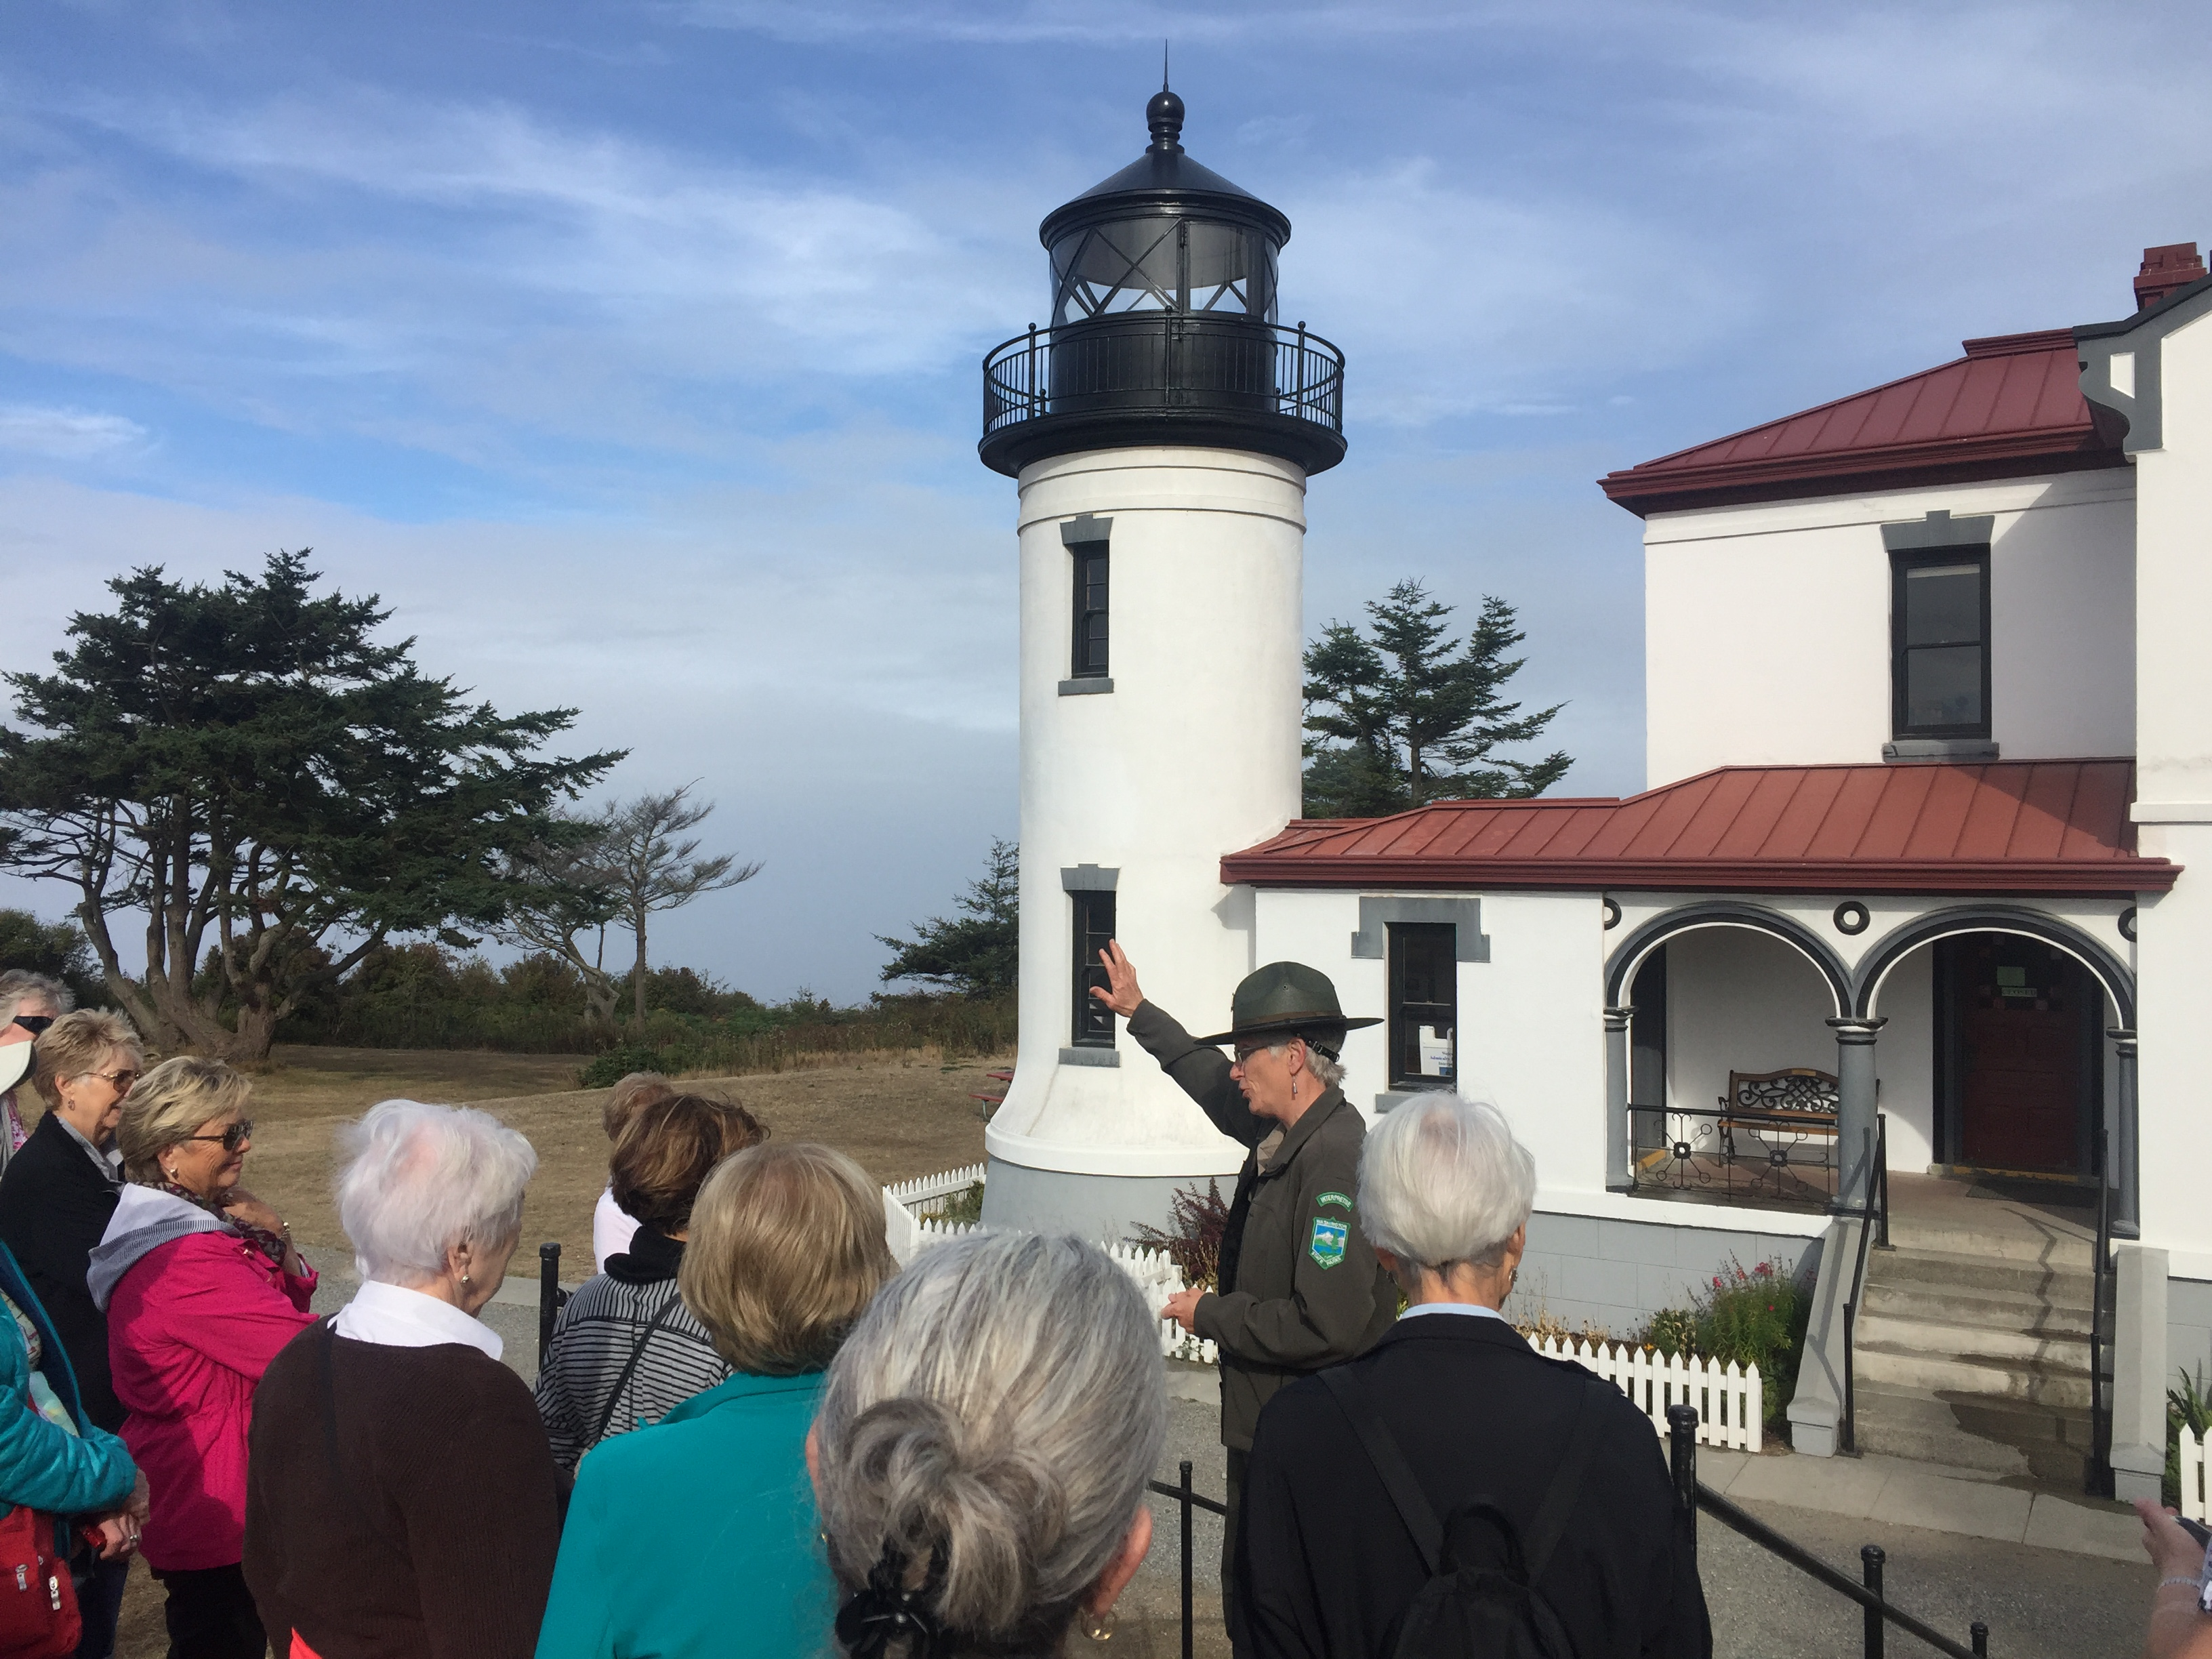 Tourguide at a Lighthouse in Washington